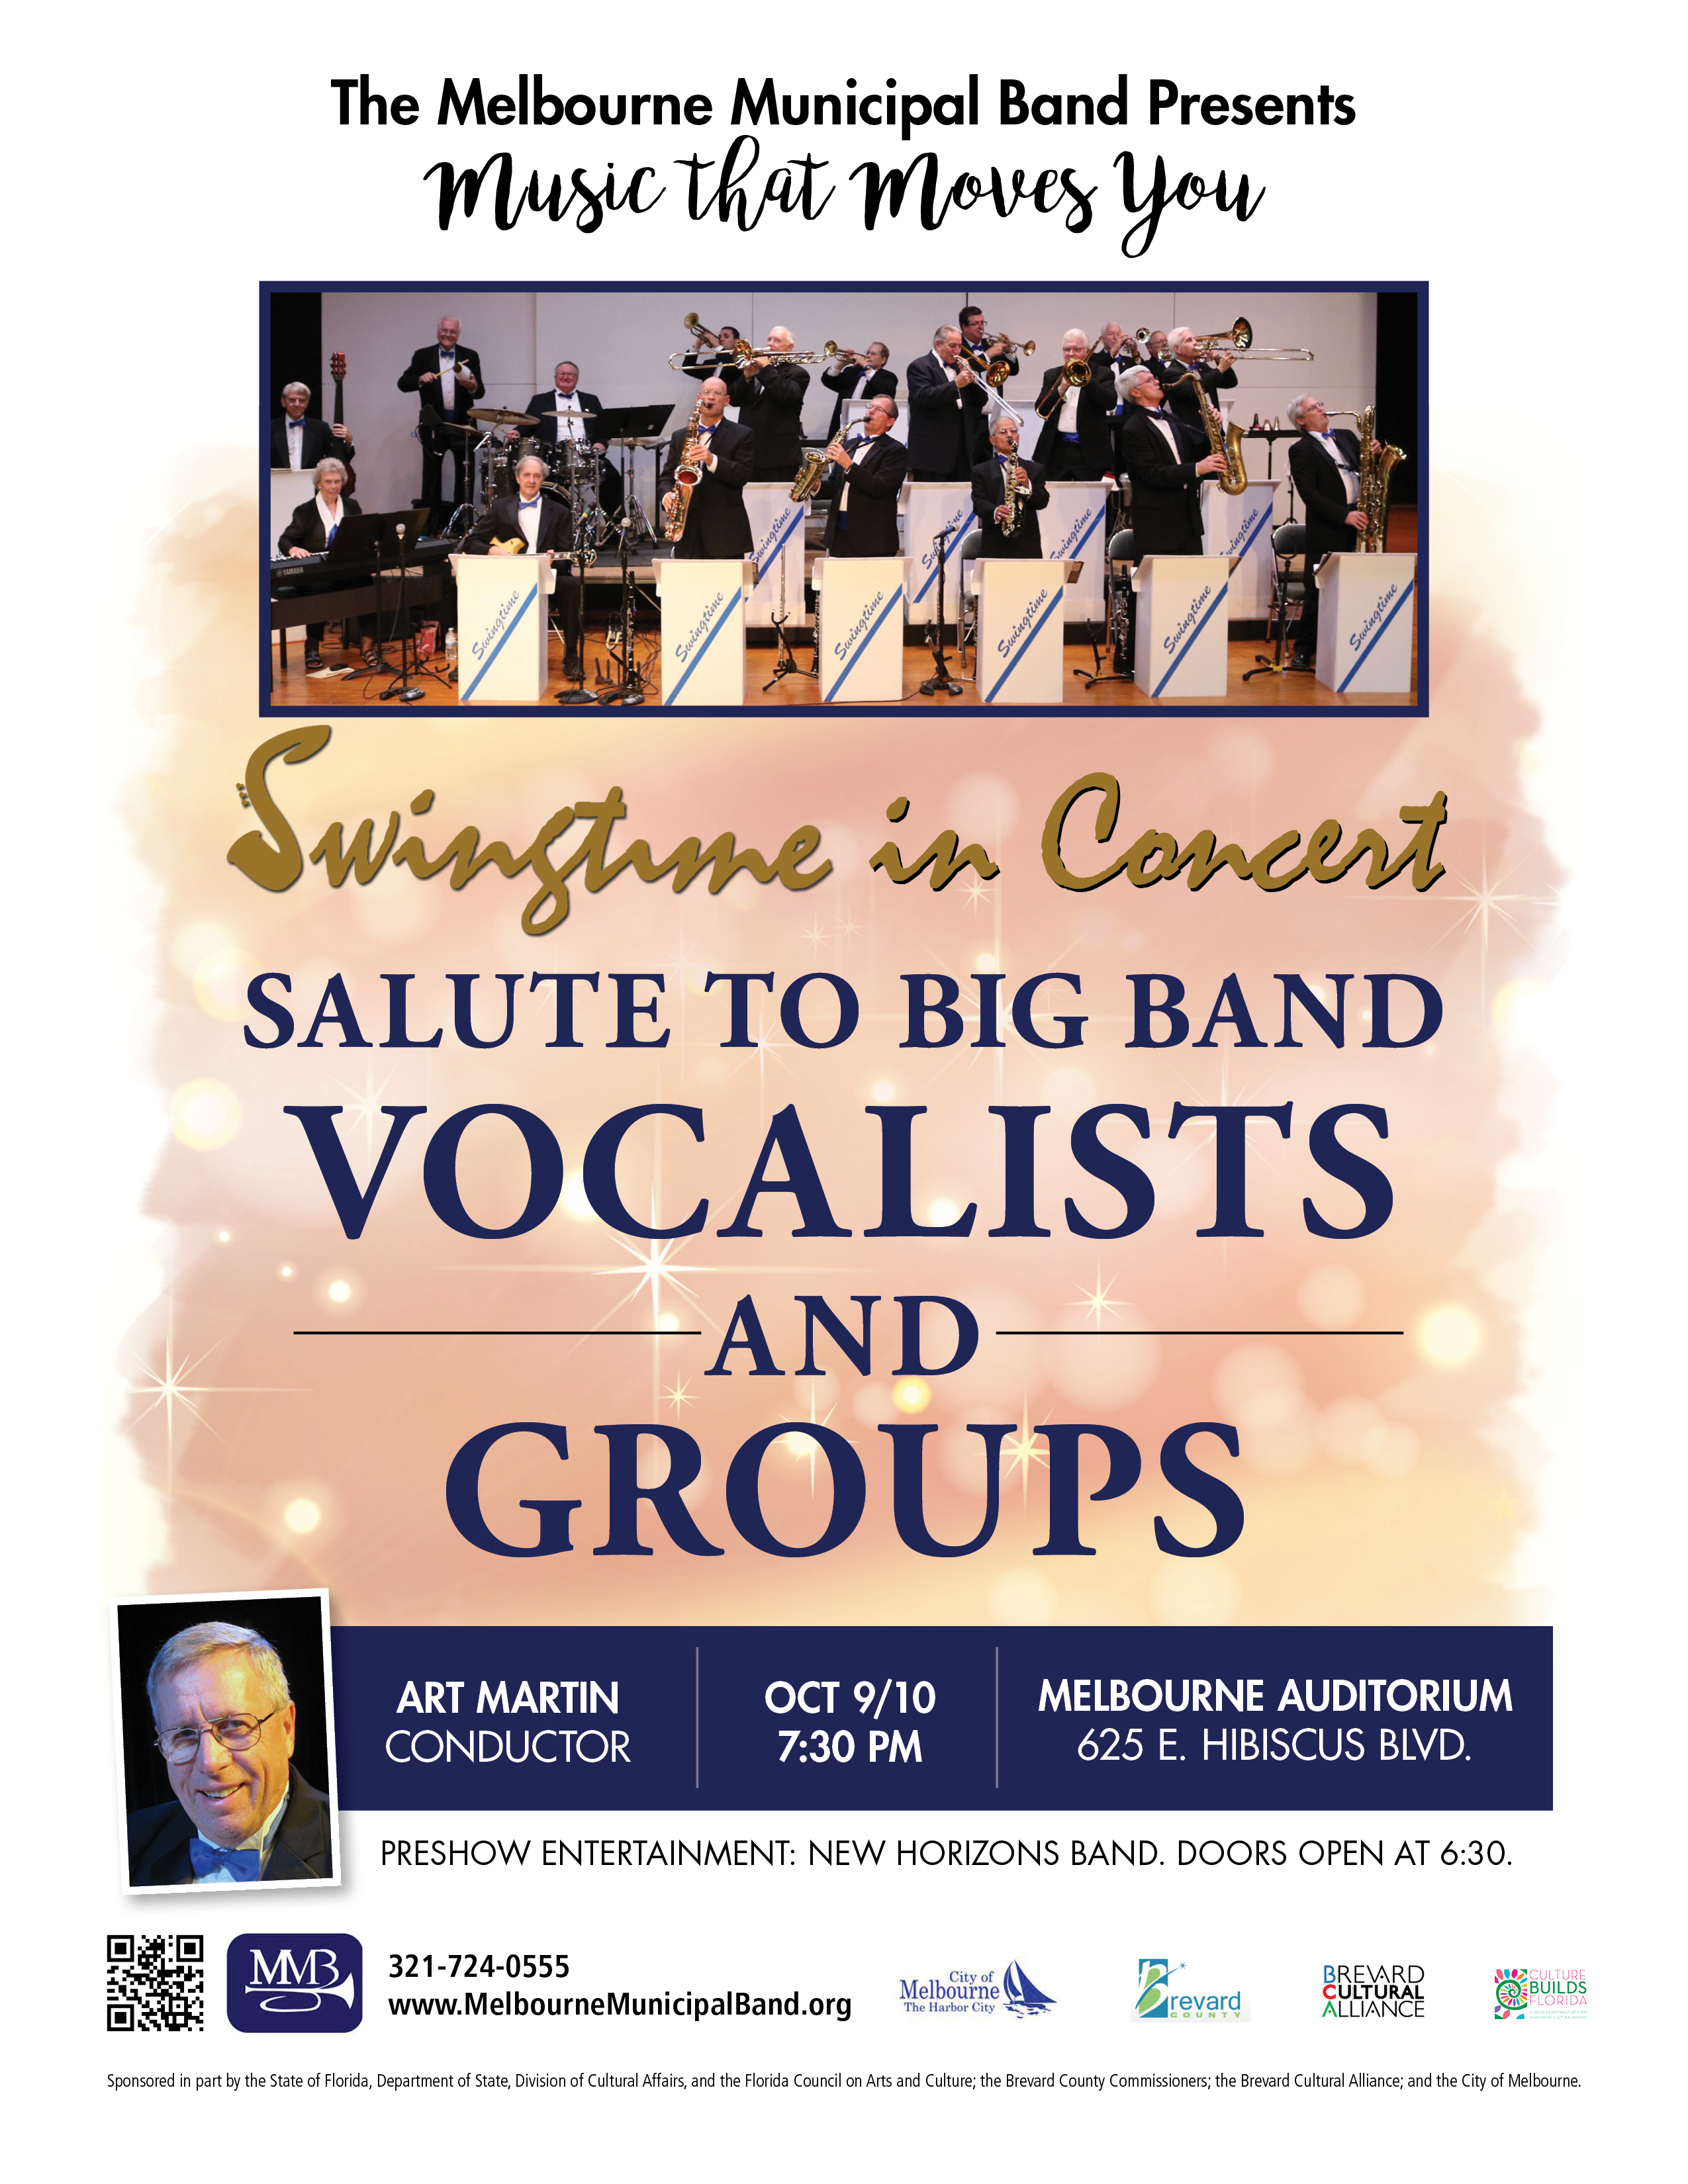 Salute to Big Band Vocalists and Groups presented by The Melbourne Municipal Band